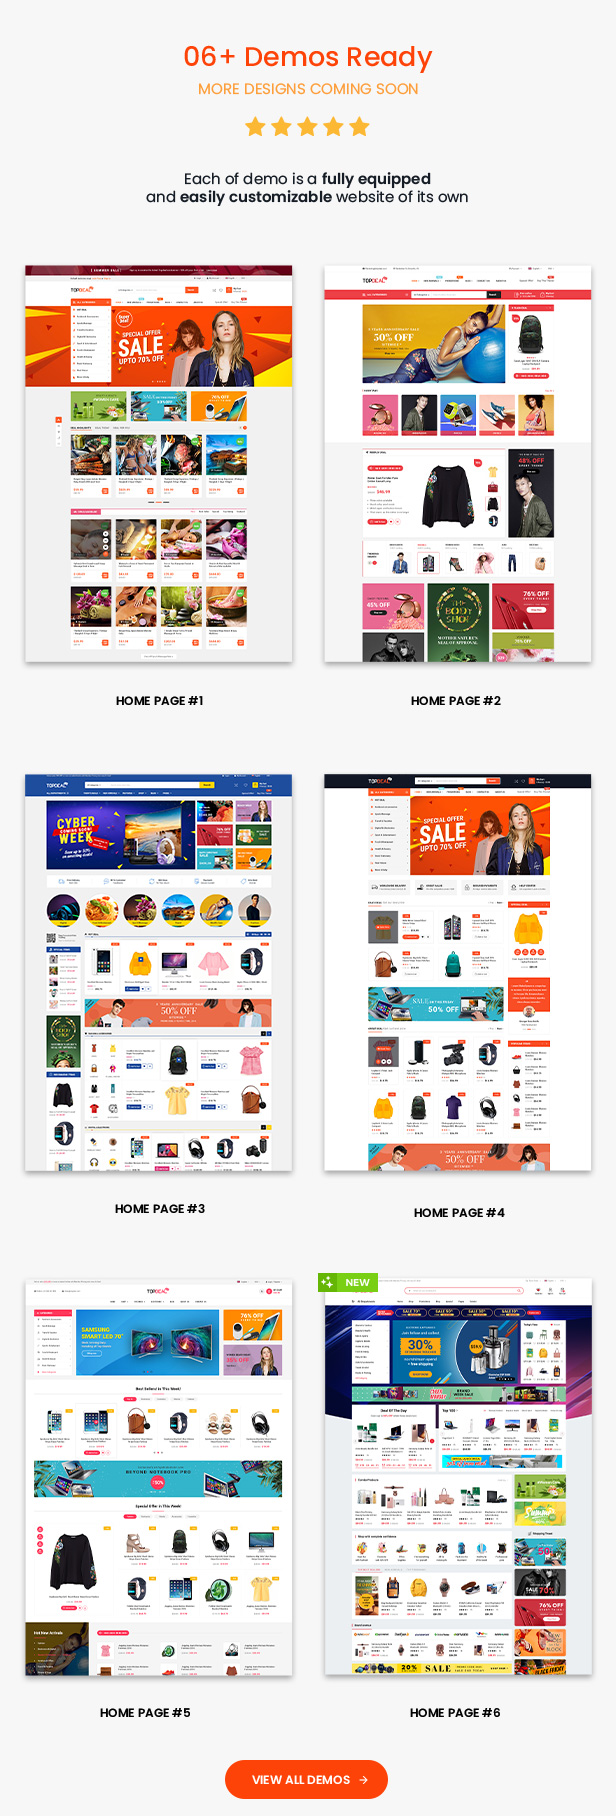 TopDeal - Top Trending Multi Vendor Marketplace WordPress Theme